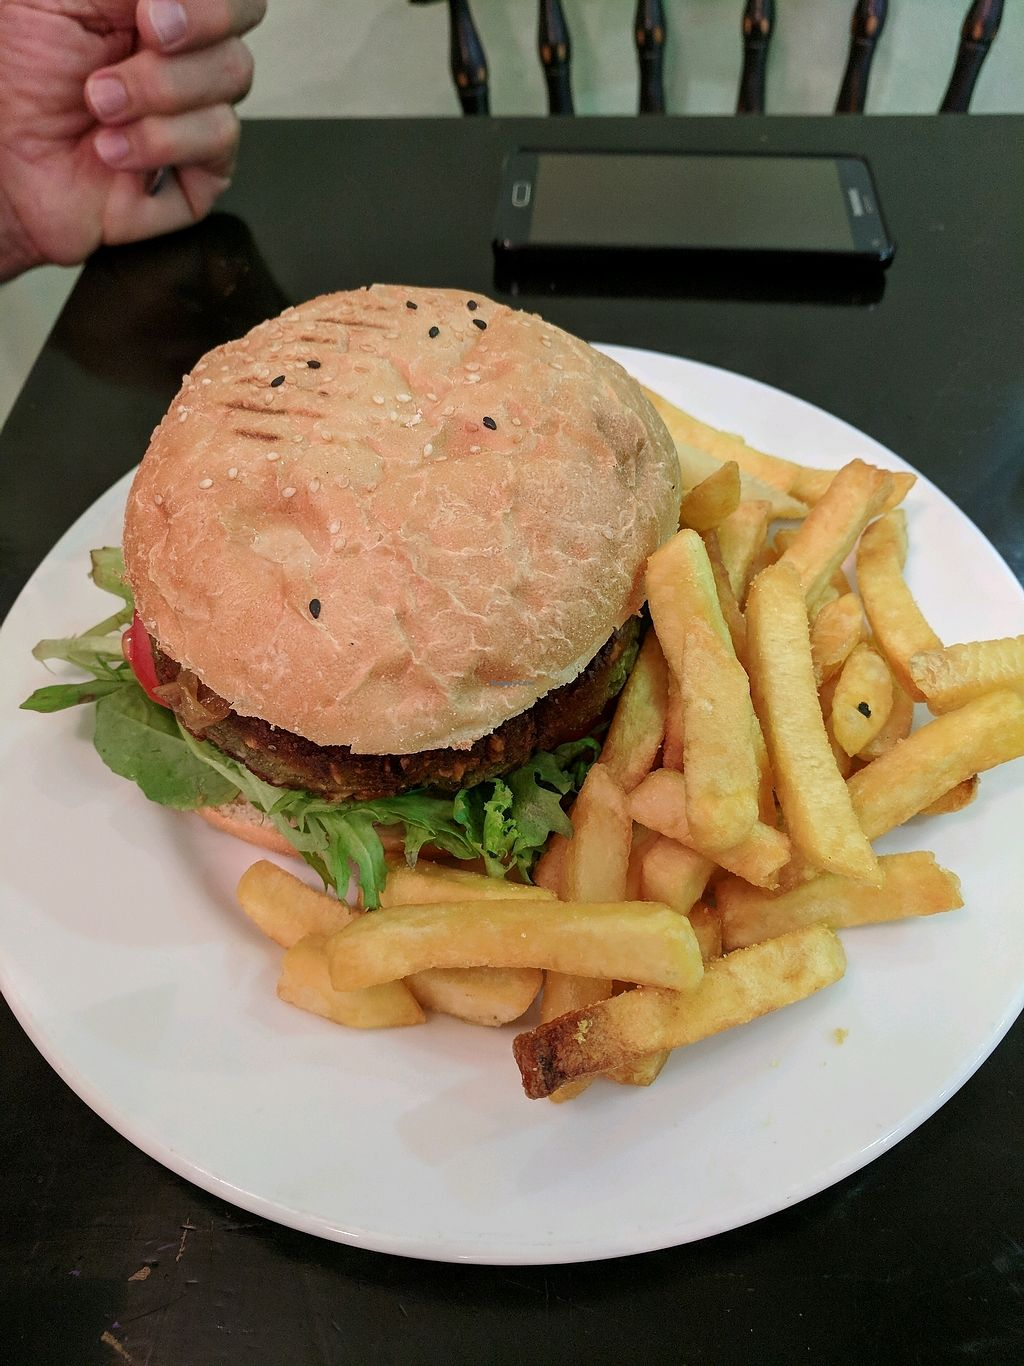 "Photo of Orchid Vegetarian Cafe  by <a href=""/members/profile/MarionFrancisVannuc"">MarionFrancisVannuc</a> <br/>Vegan Lentil Burger & Chips <br/> January 14, 2018  - <a href='/contact/abuse/image/101246/346509'>Report</a>"